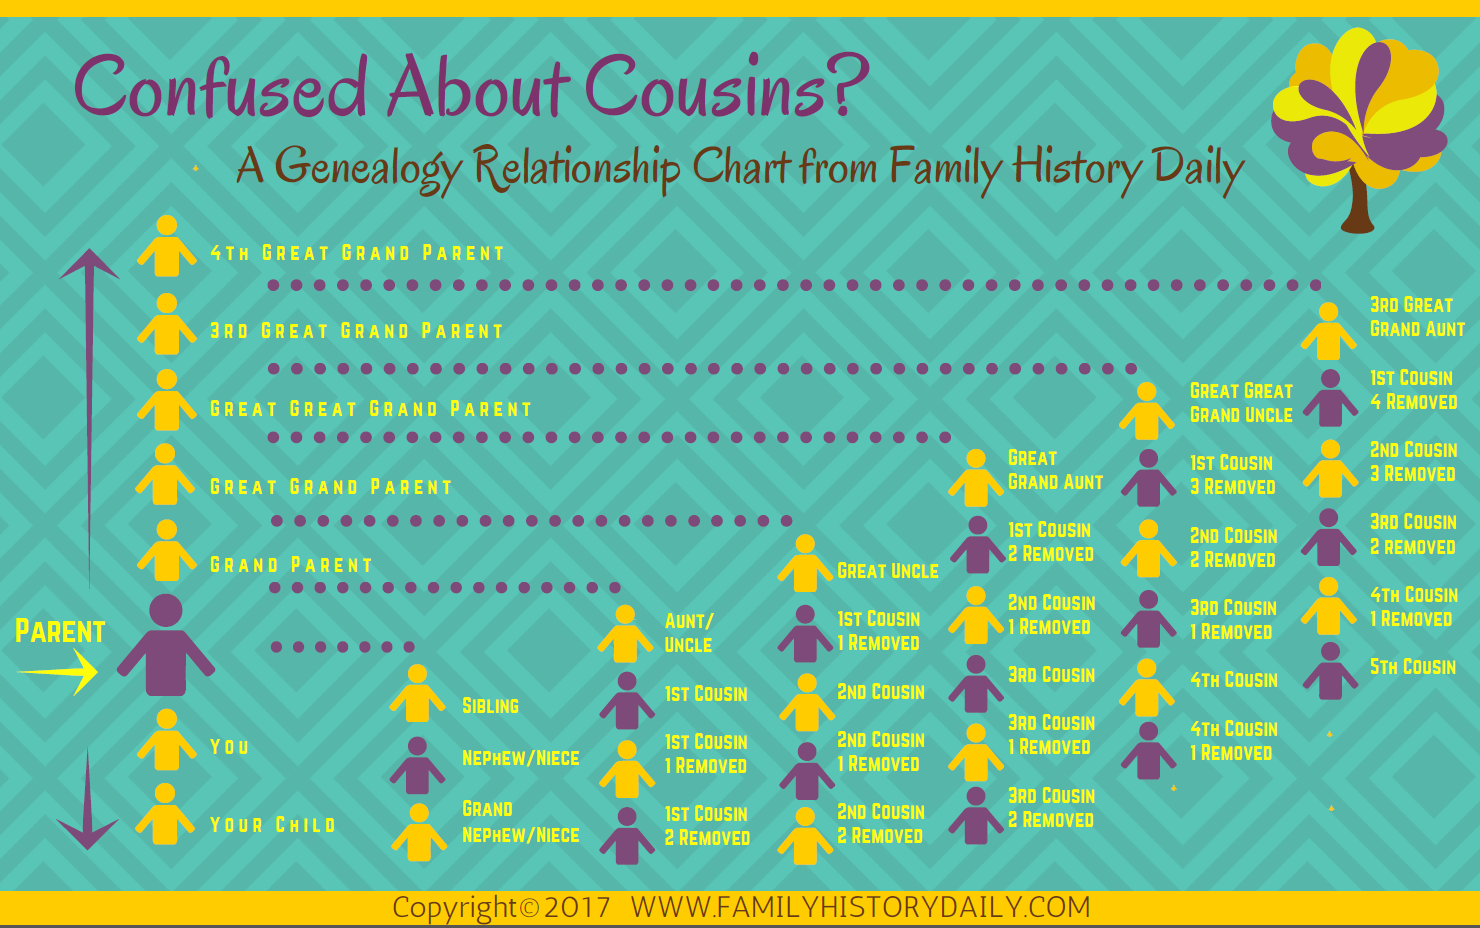 Genealogy-Relationship-Chart-from-Family-History-Daily